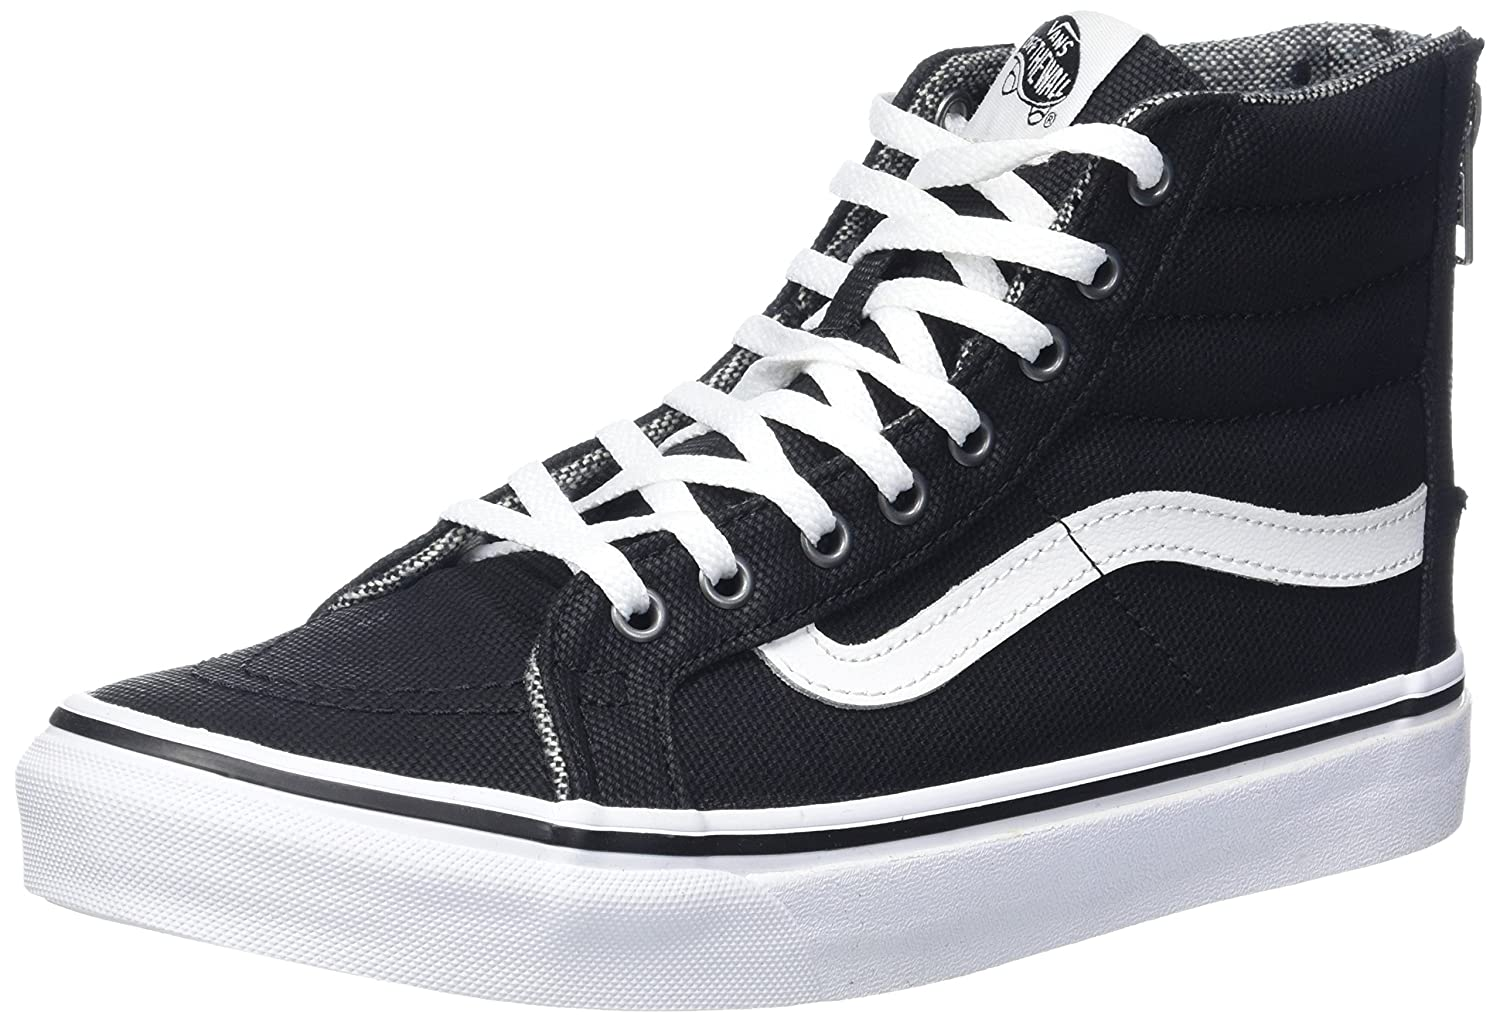 Vans Unisex Sk8-Hi Slim Women's Skate Shoe B00AMLGQMI 9.5 M US Women / 8 M US Men|Black/True White